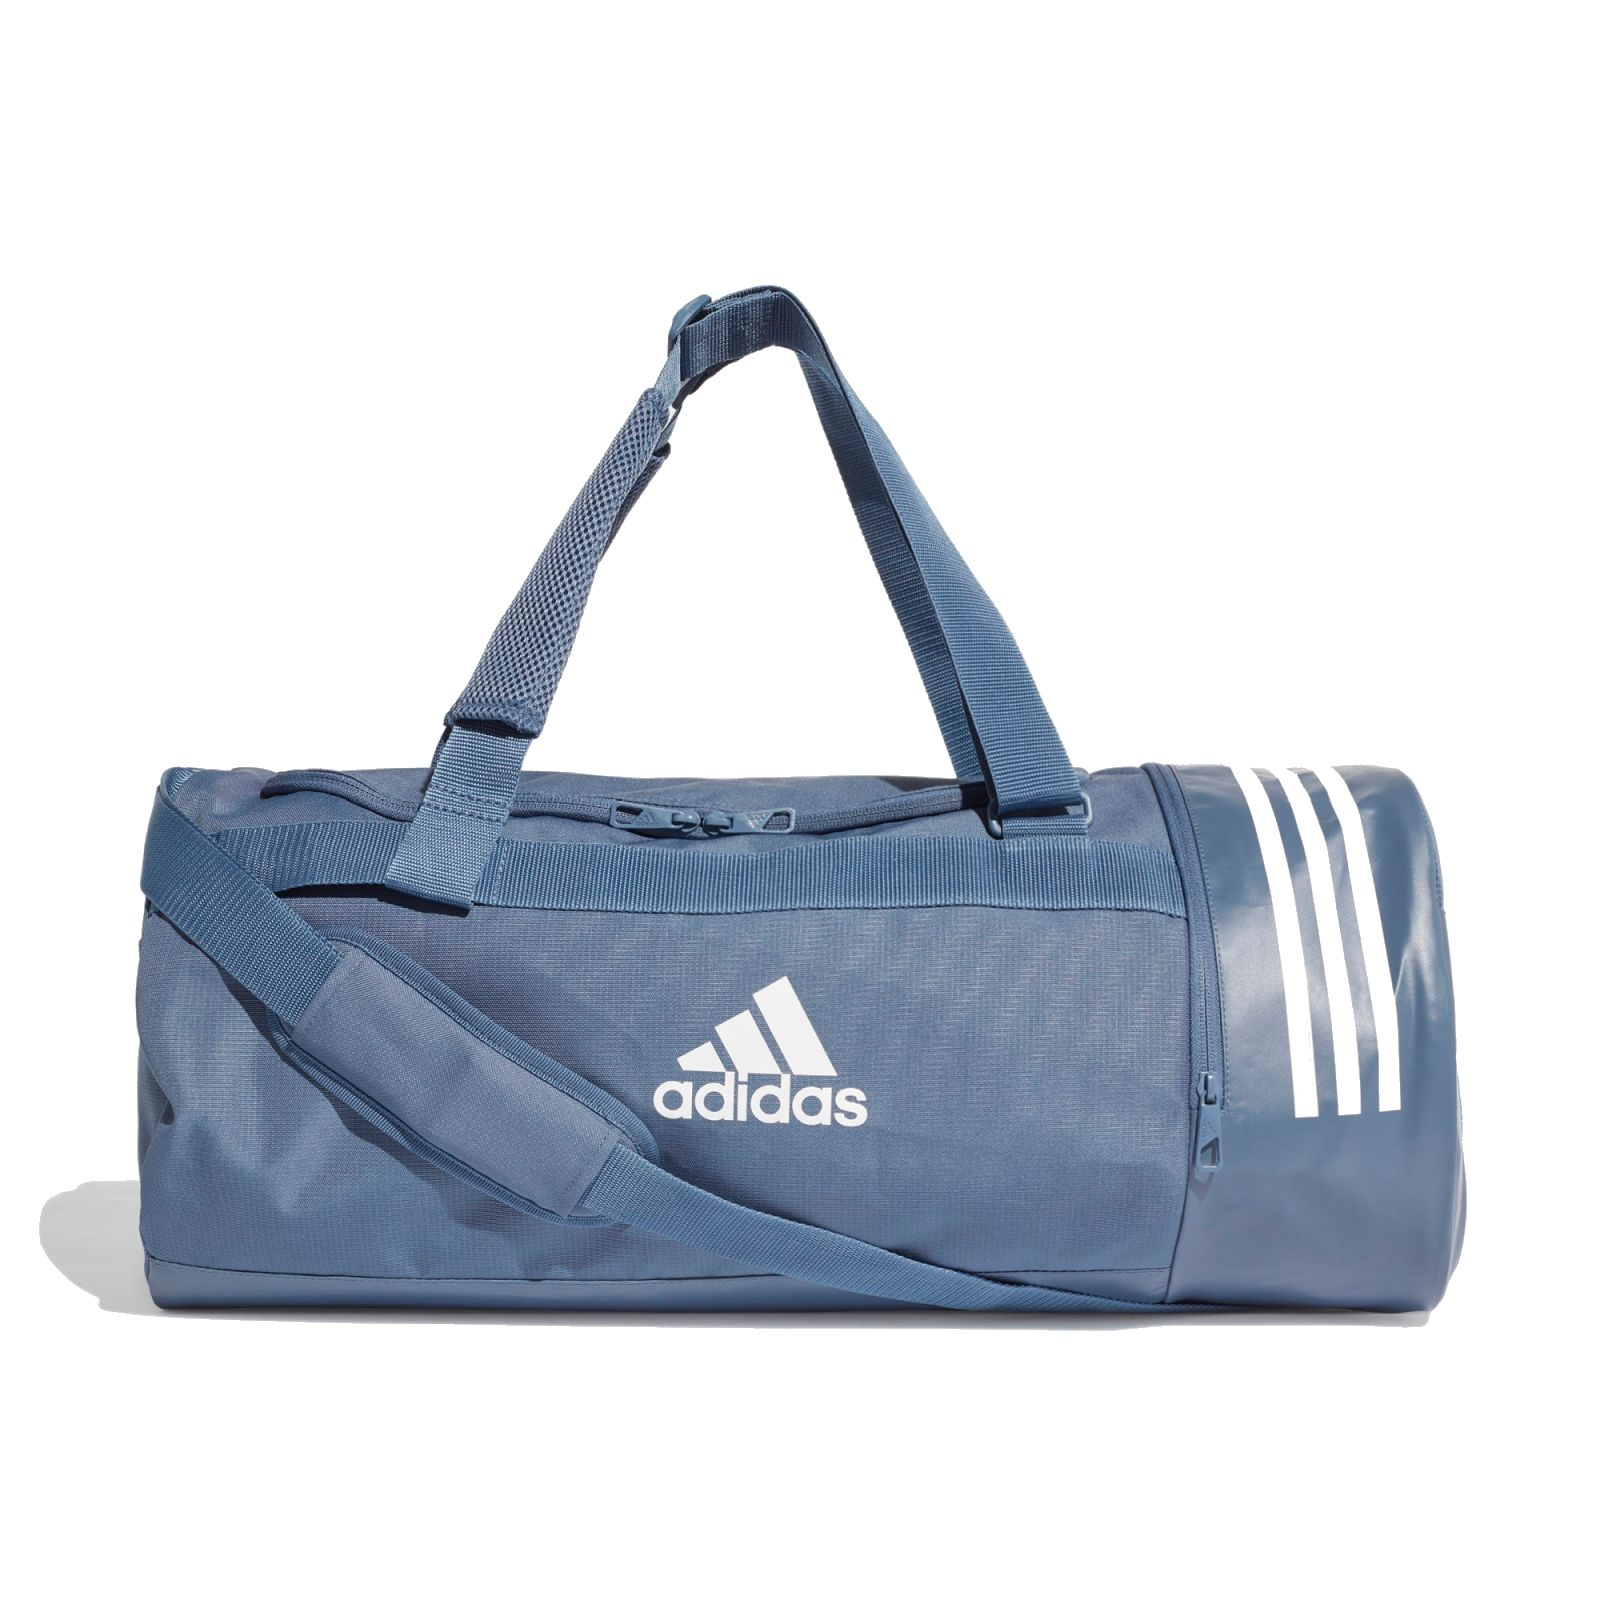 Details zu adidas Performance Sporttasche CONVERTIBLE 3 STRIPES DUFFEL BAG M blau DZ8693